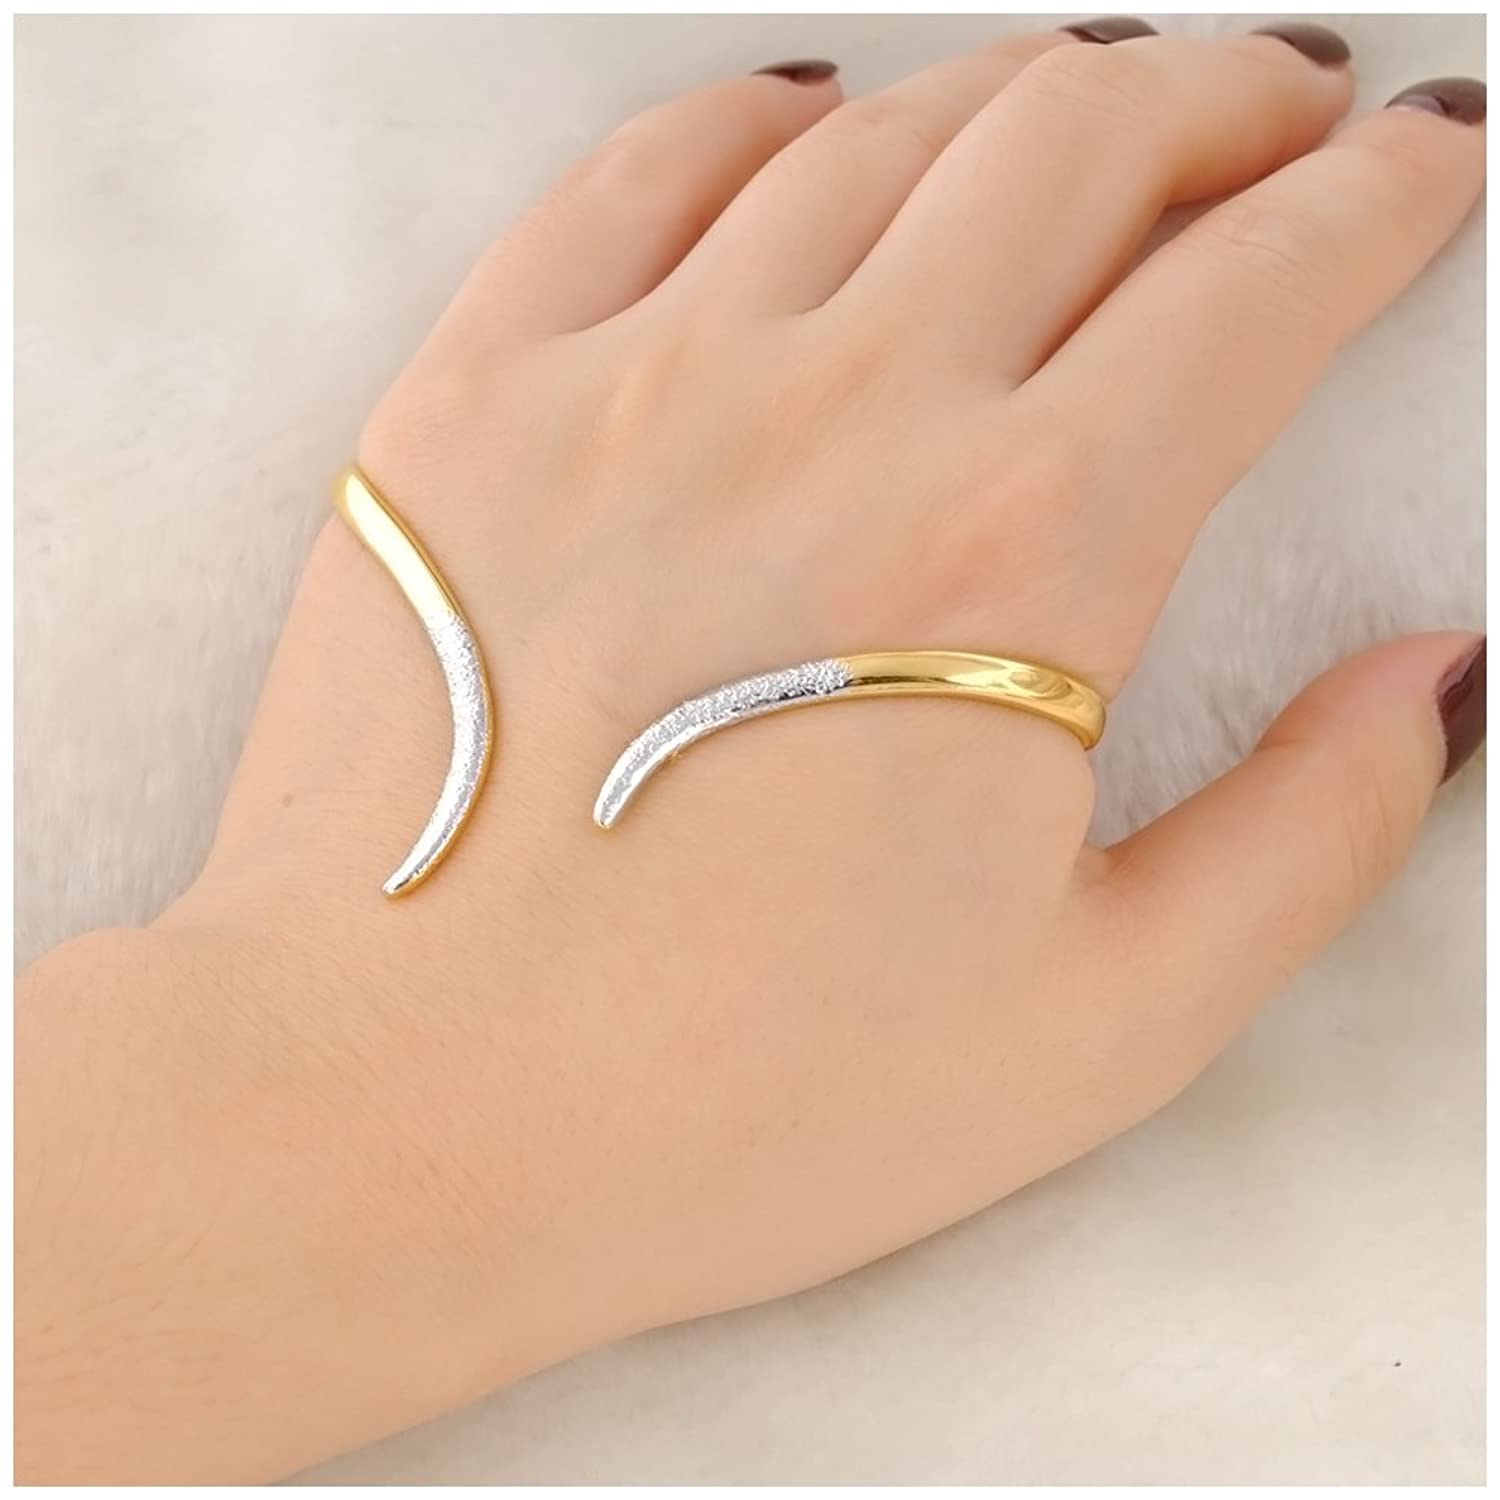 Amazon.com: Mytys 2 Tone Palm Cuff Full Hand Bracelet Gold Plated ...